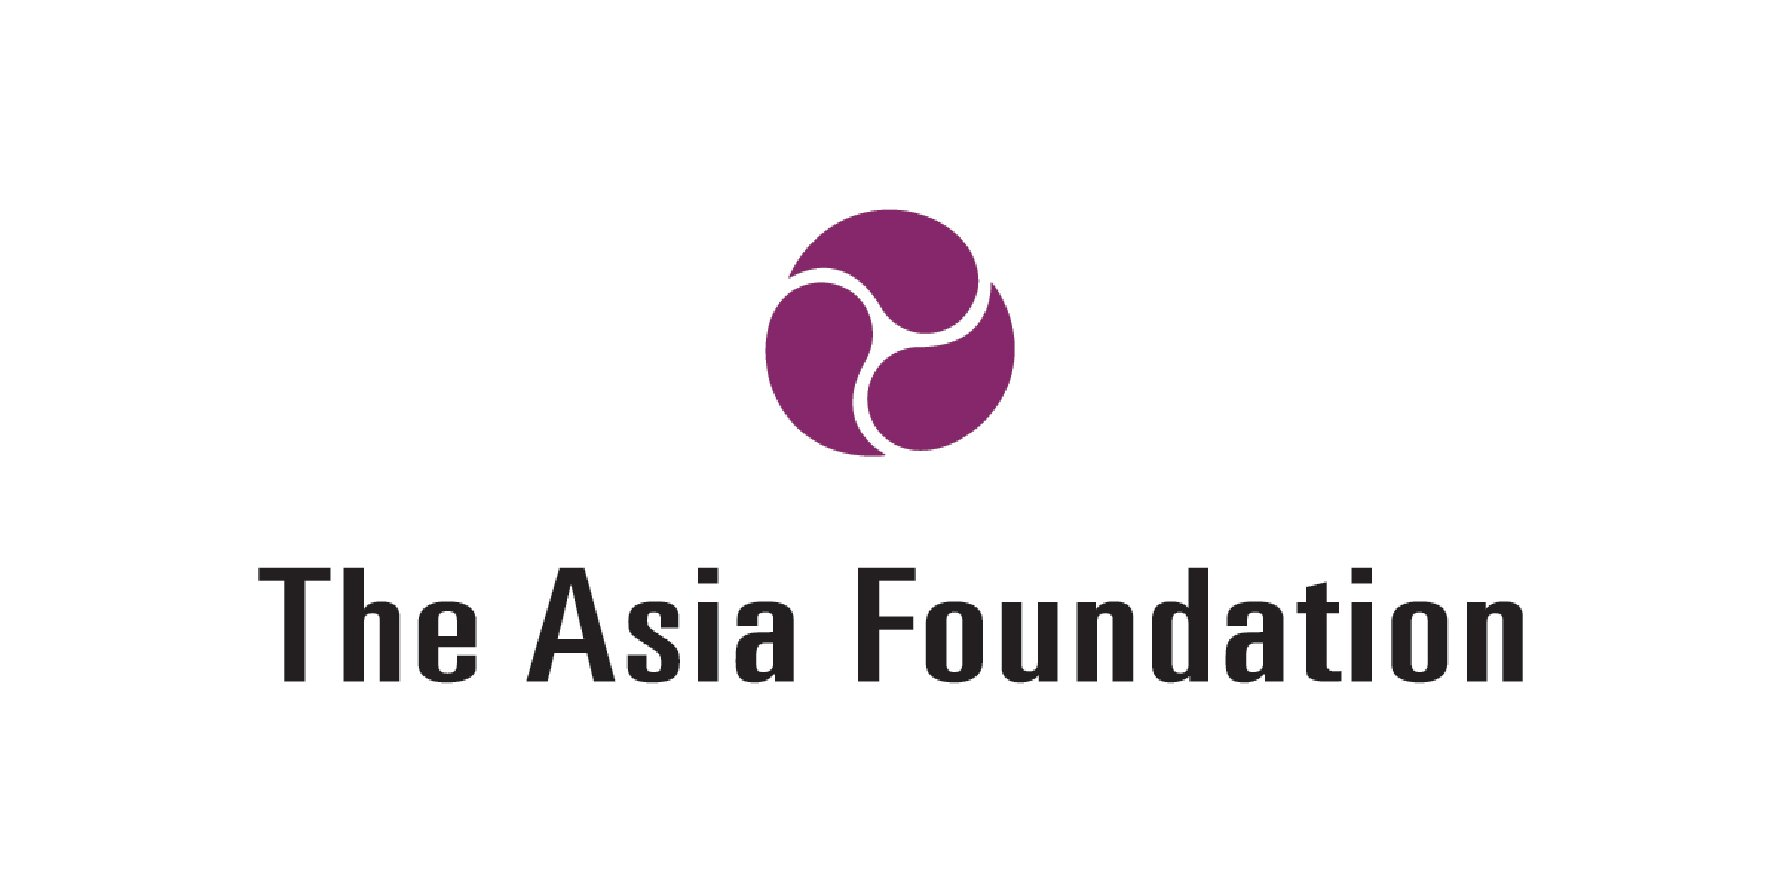 https://assets.roar.media/assets/4DgIw5TTXzO8Plw5_Asia-Foundation.jpg